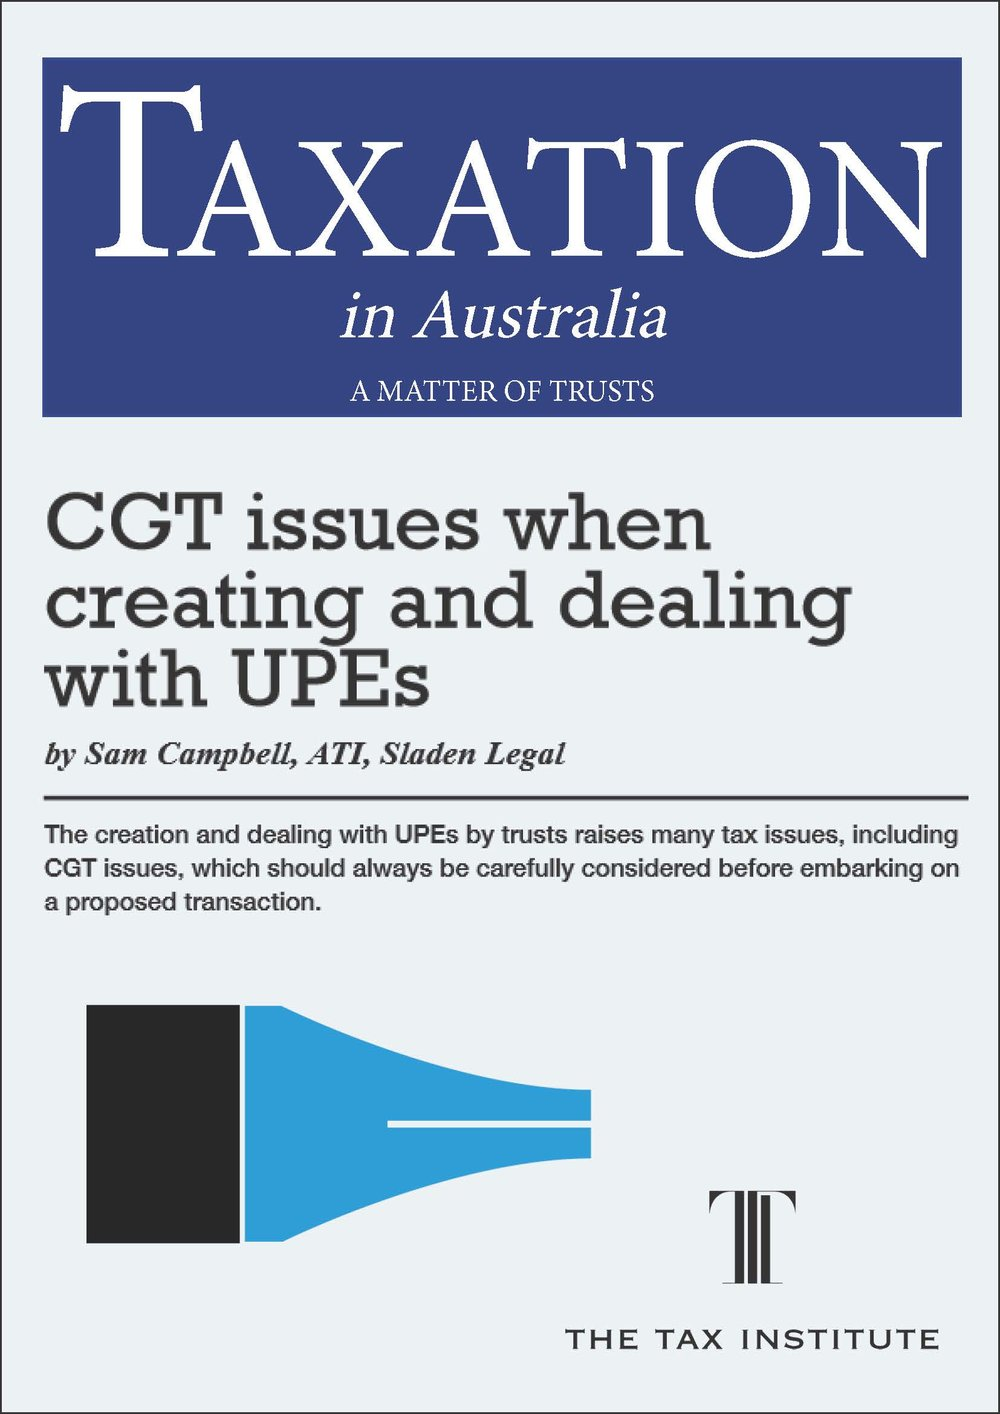 CGT issues when creating and dealing with UPEs 3 February 2016